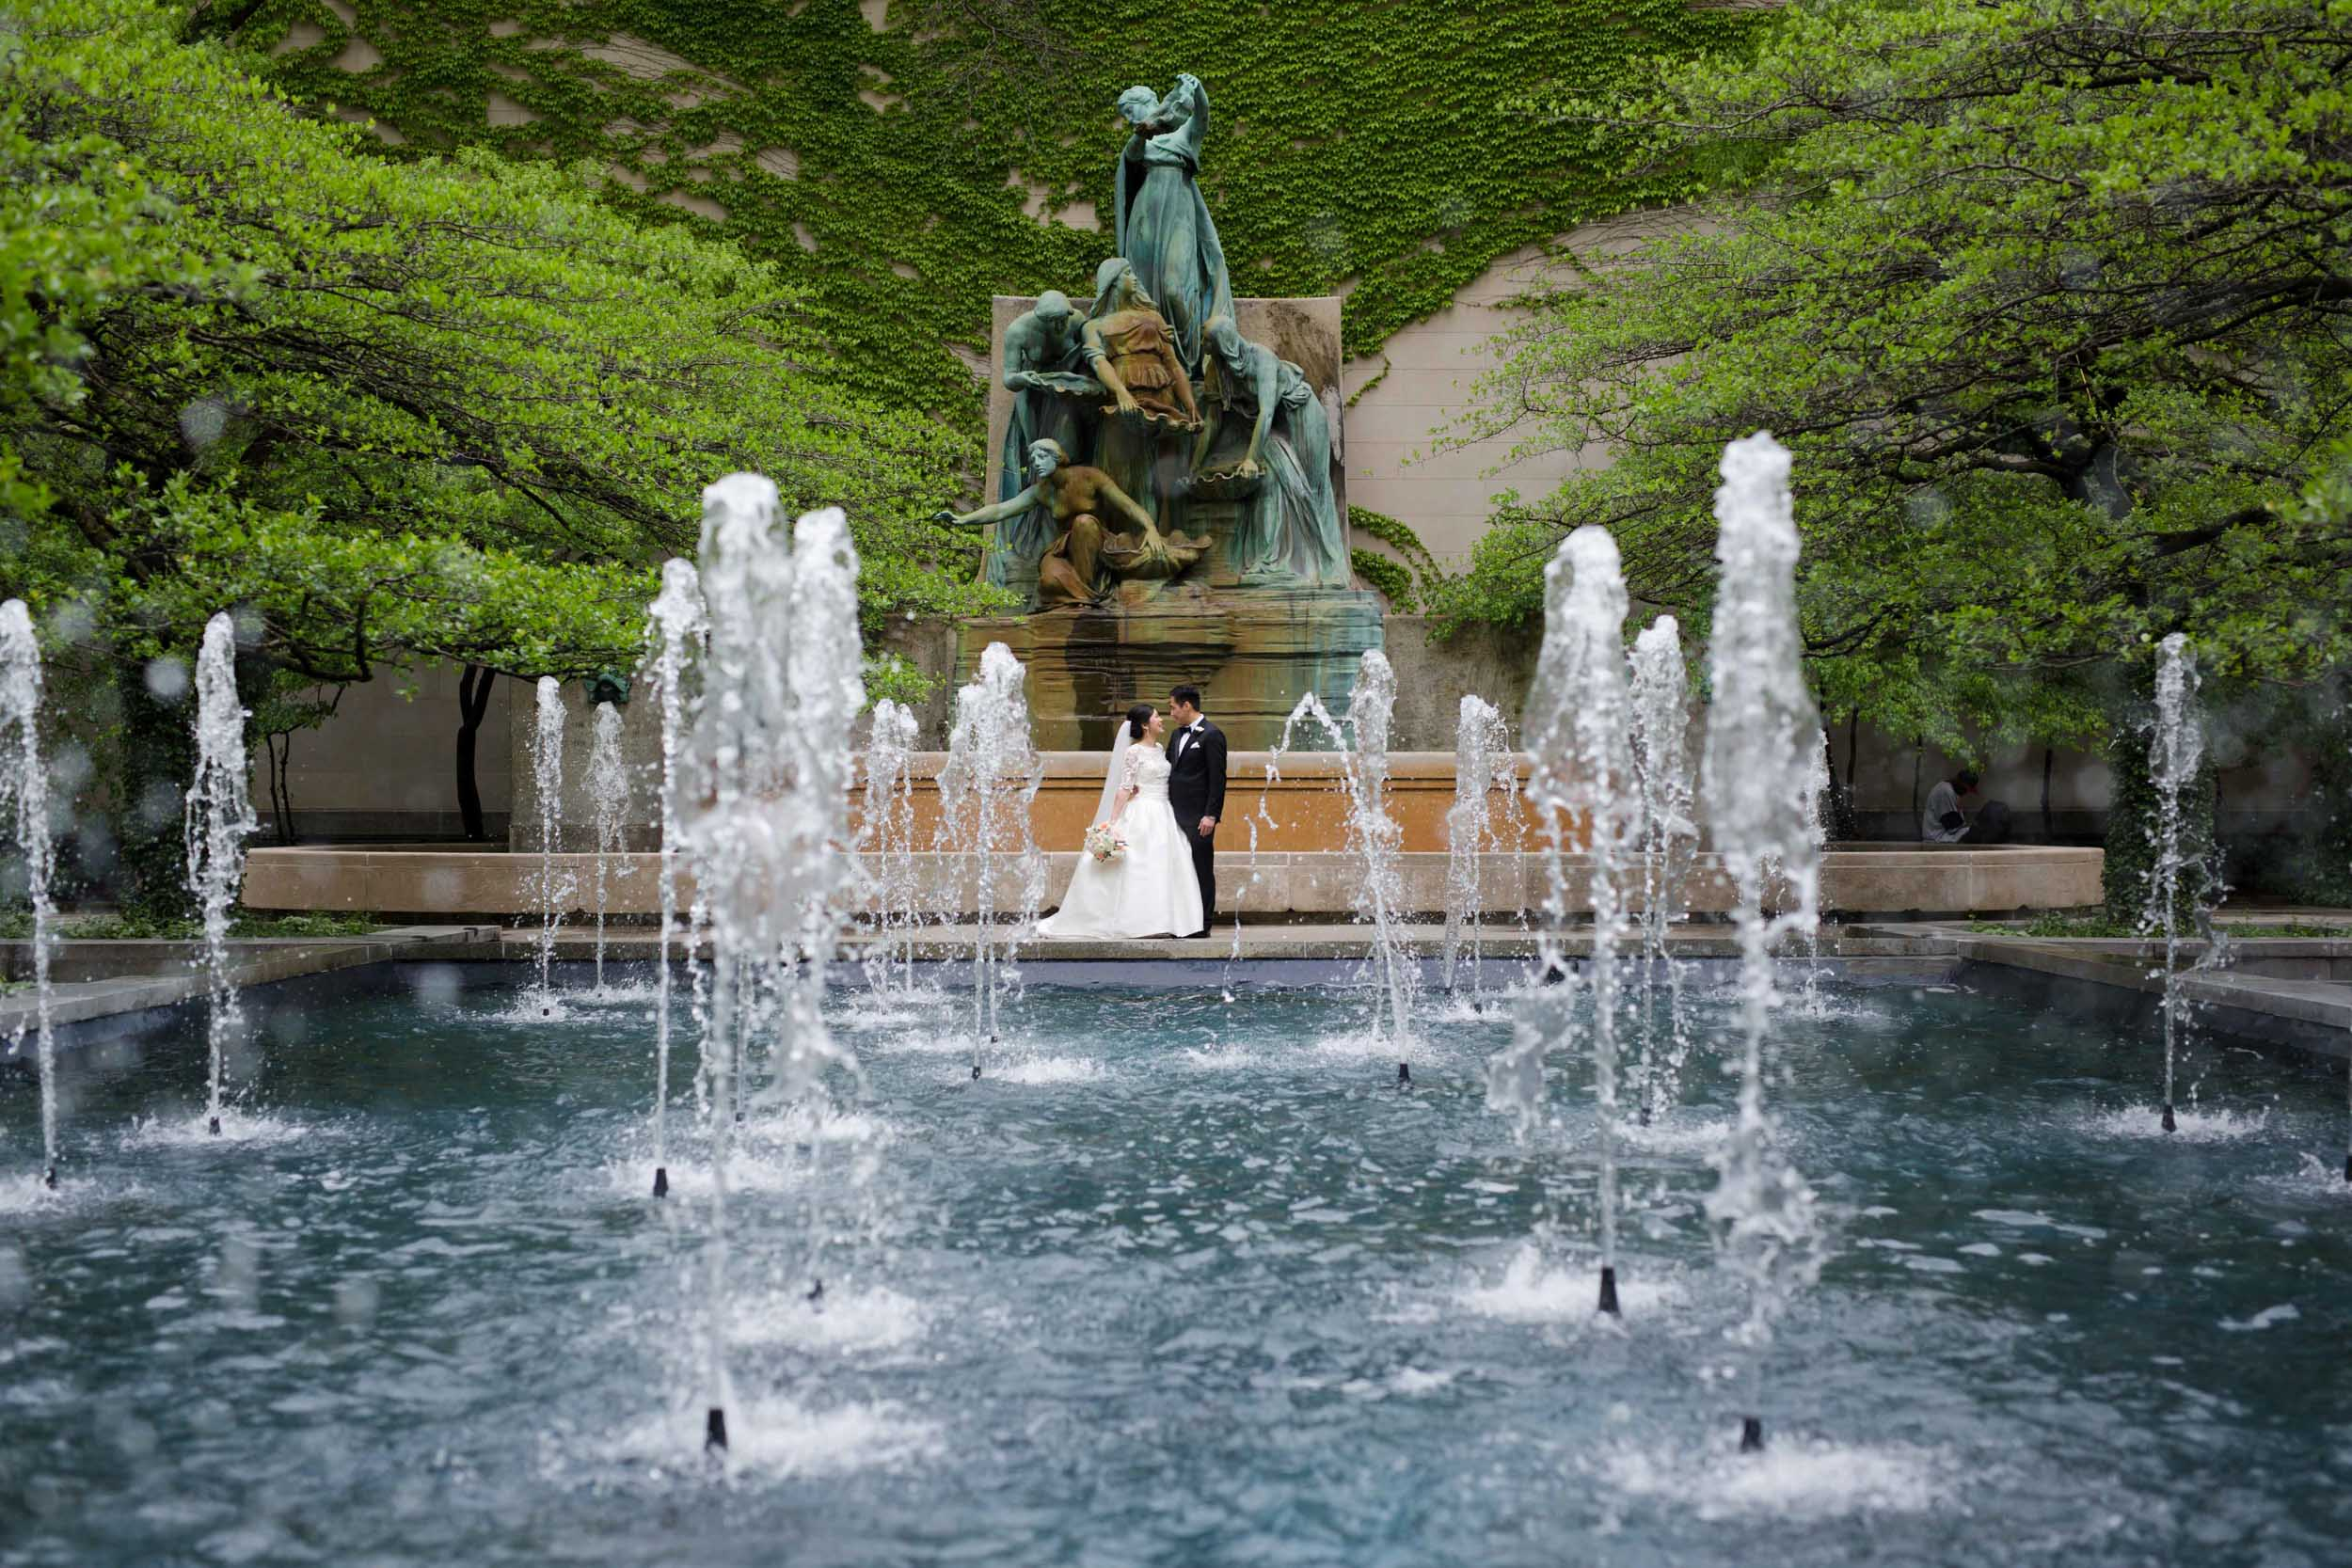 Wedding photography at the Art Institute of Chicago gardens